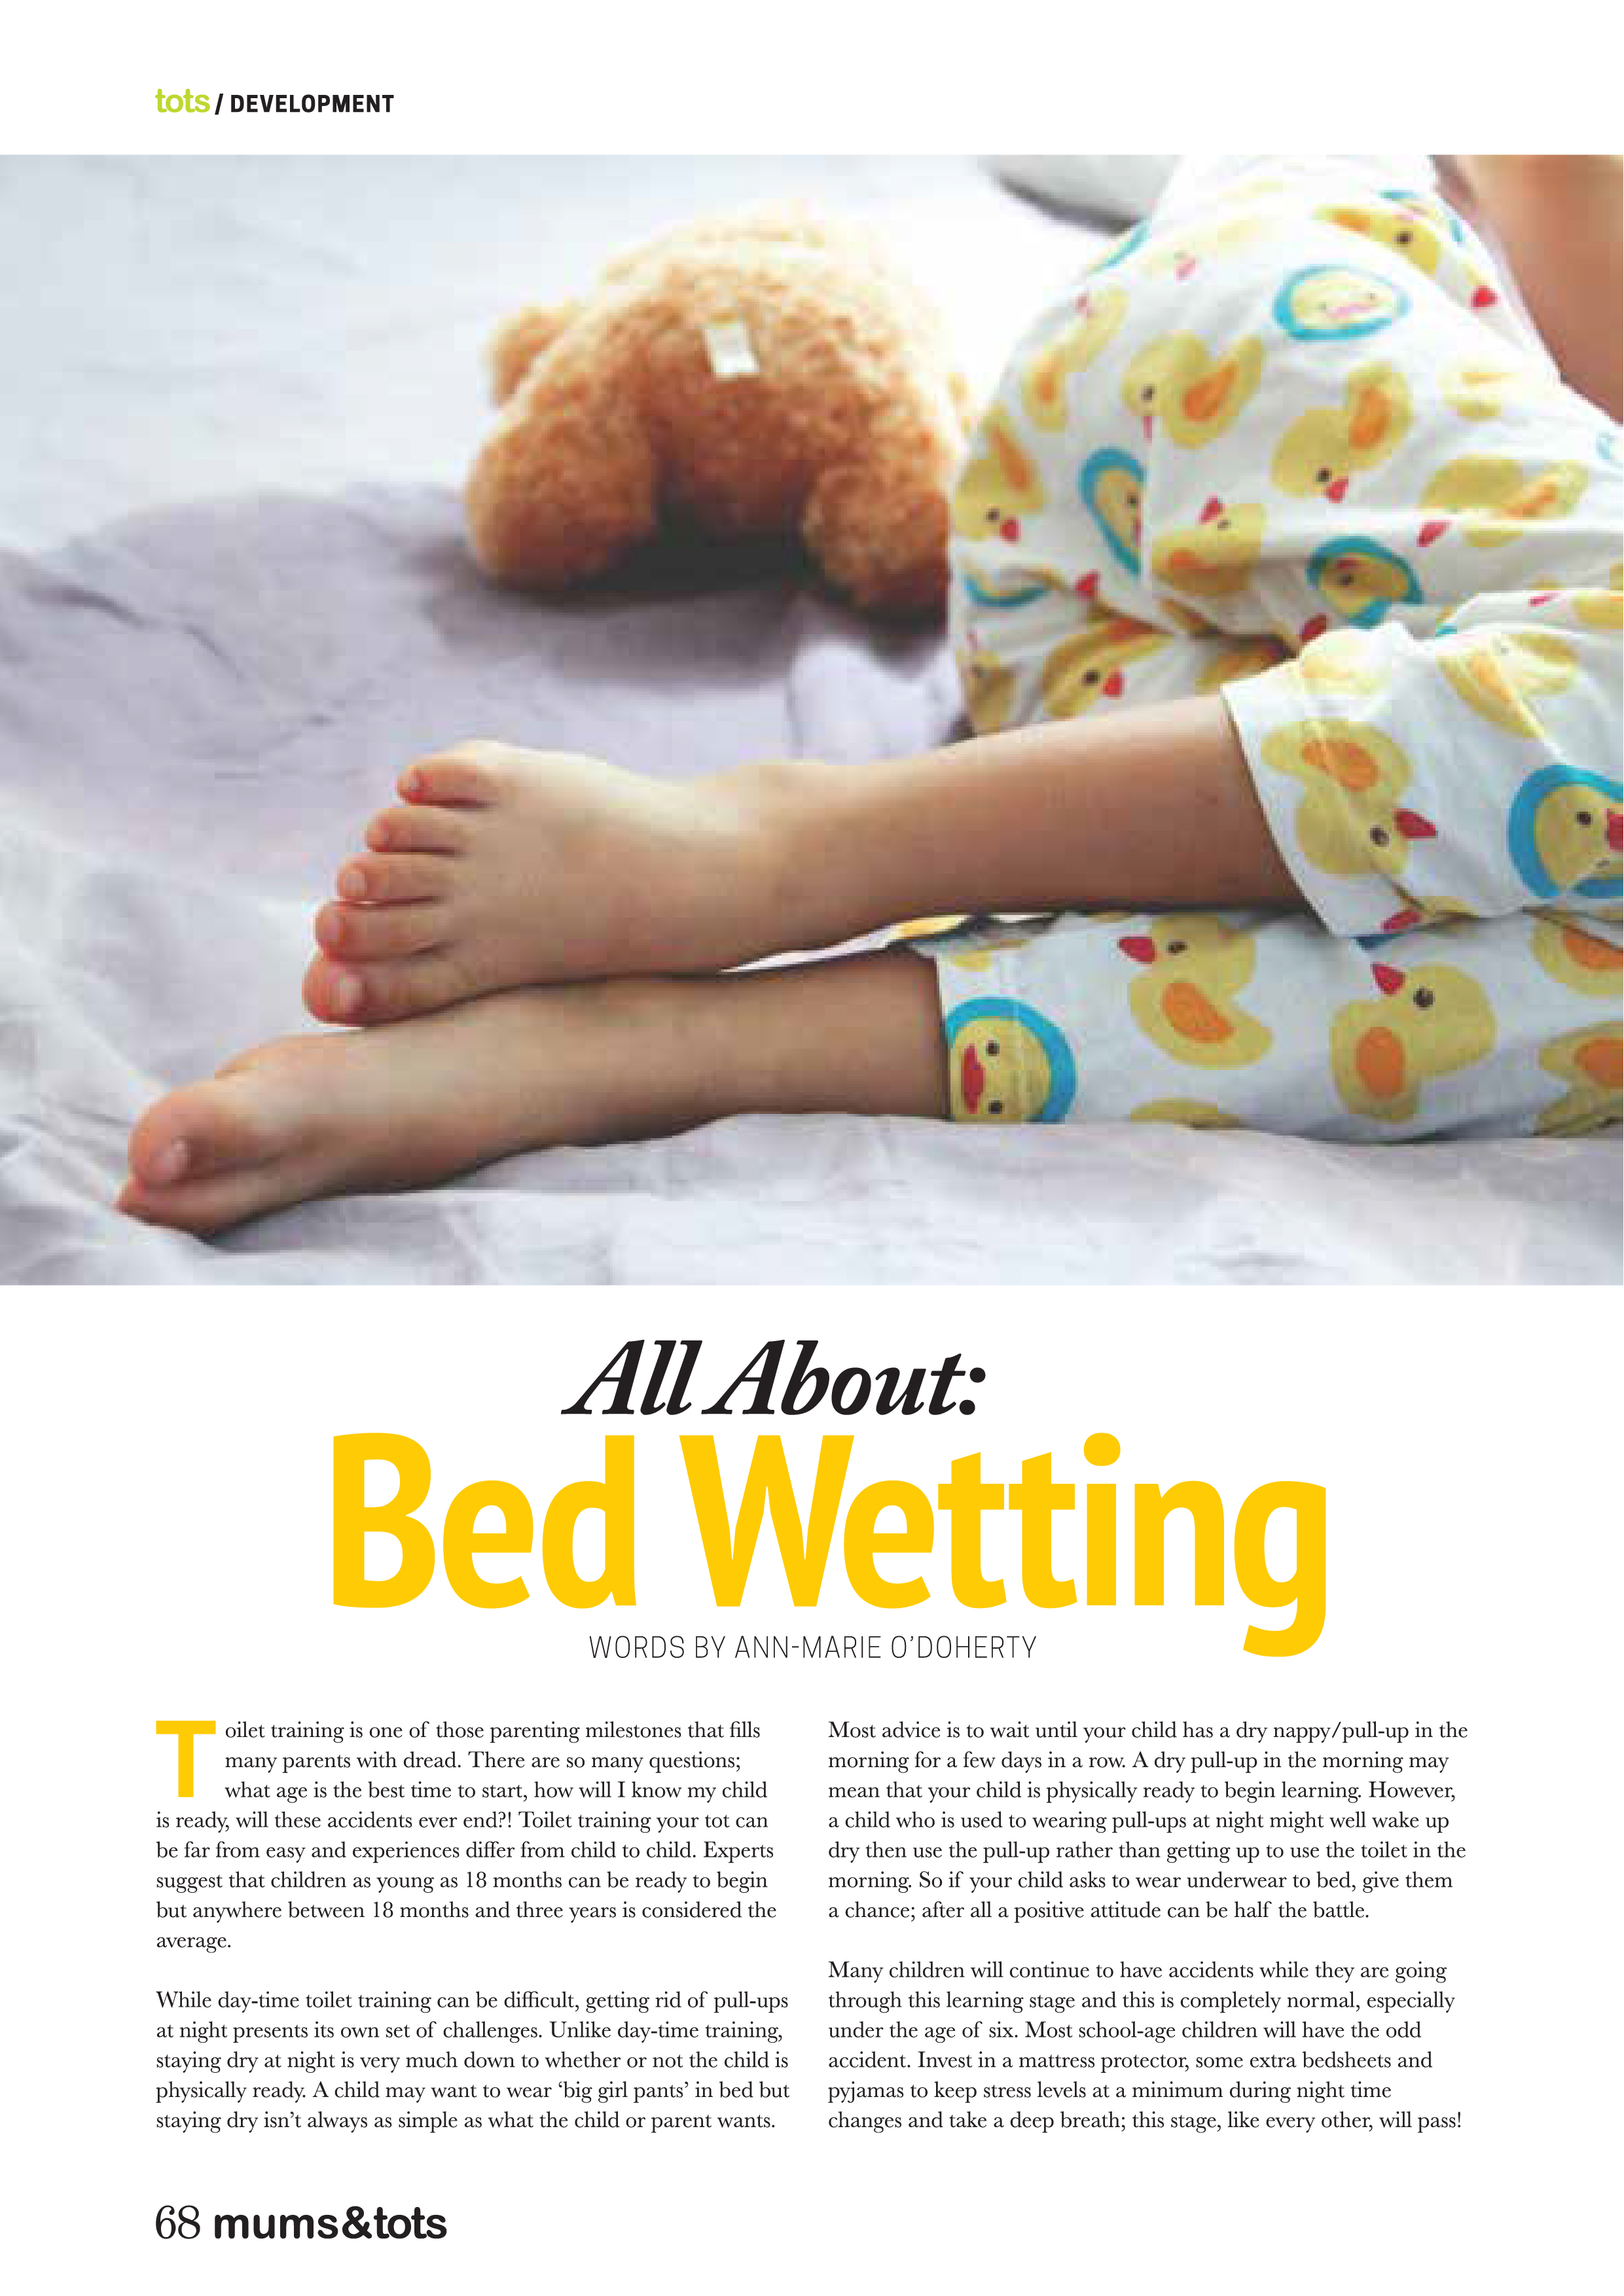 Depiction of an article published in Ireland, mums&tots magazine, discussing bedwetting and recommending the Wet-Stop alarm to cure bedwetting.